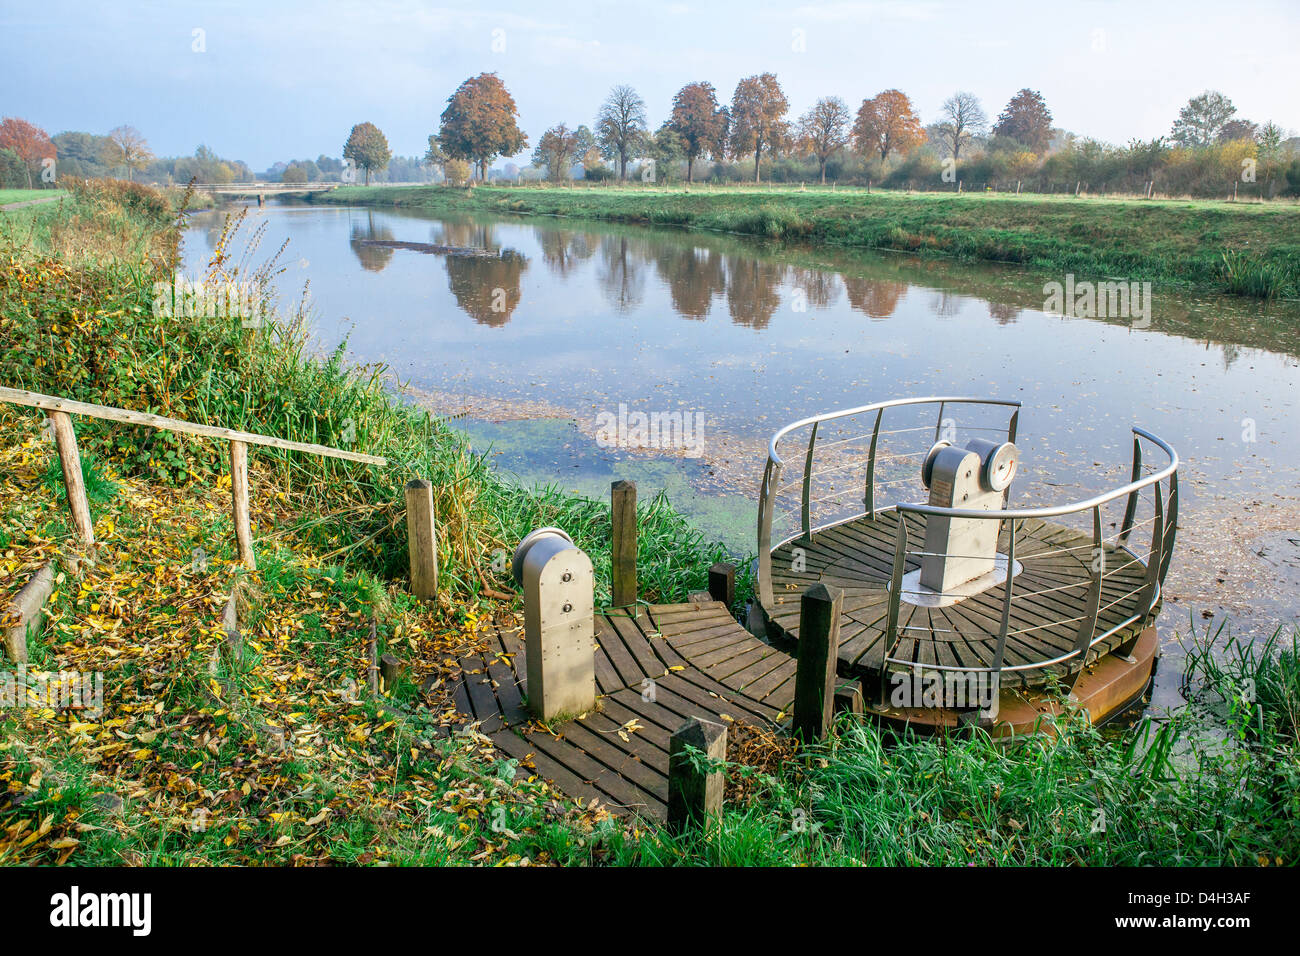 Manual river crossing on the River Mark in autumn, taken from the Belgium-Holland border, Meersel Dreef, Belgium - Stock Image